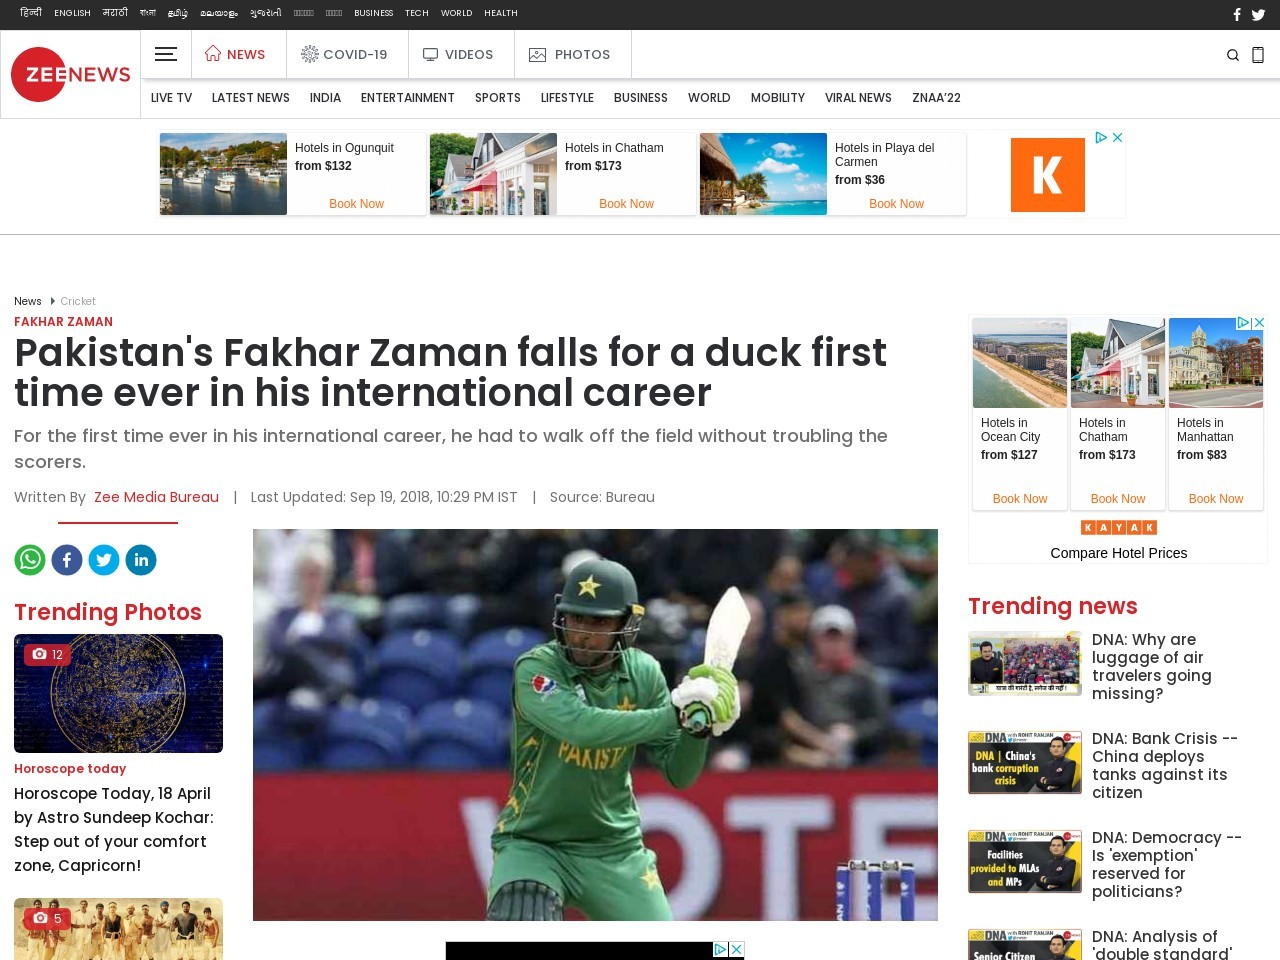 Pakistan's Fakhar Zaman falls for a duck first time ever in his international career